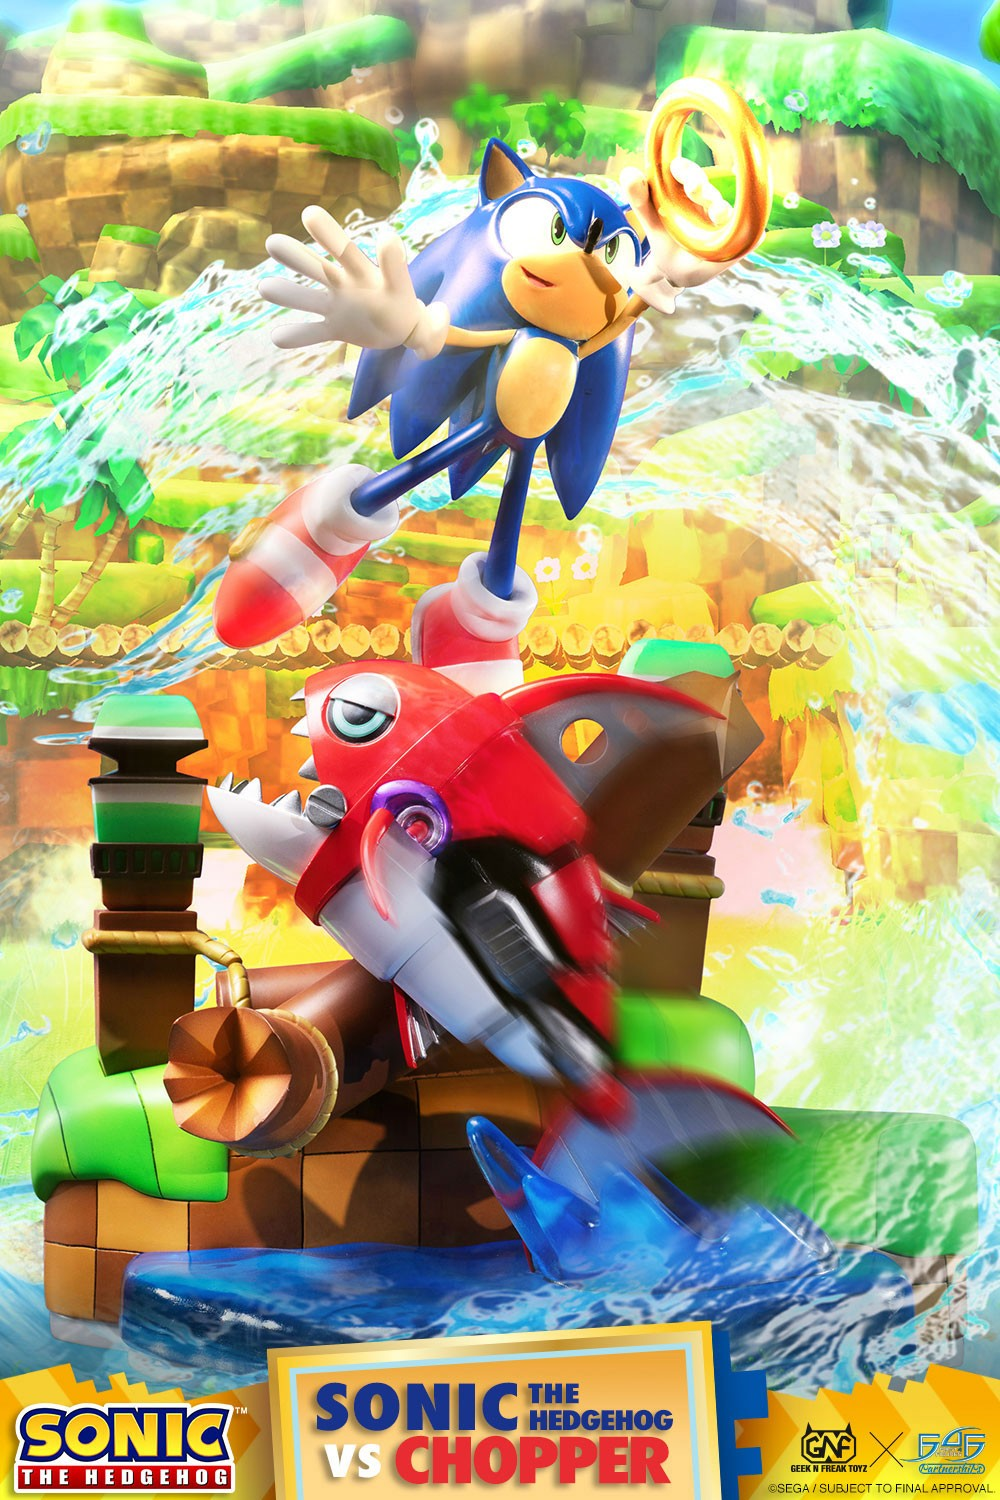 Sonic The Hedgehog vs Chopper Diorama